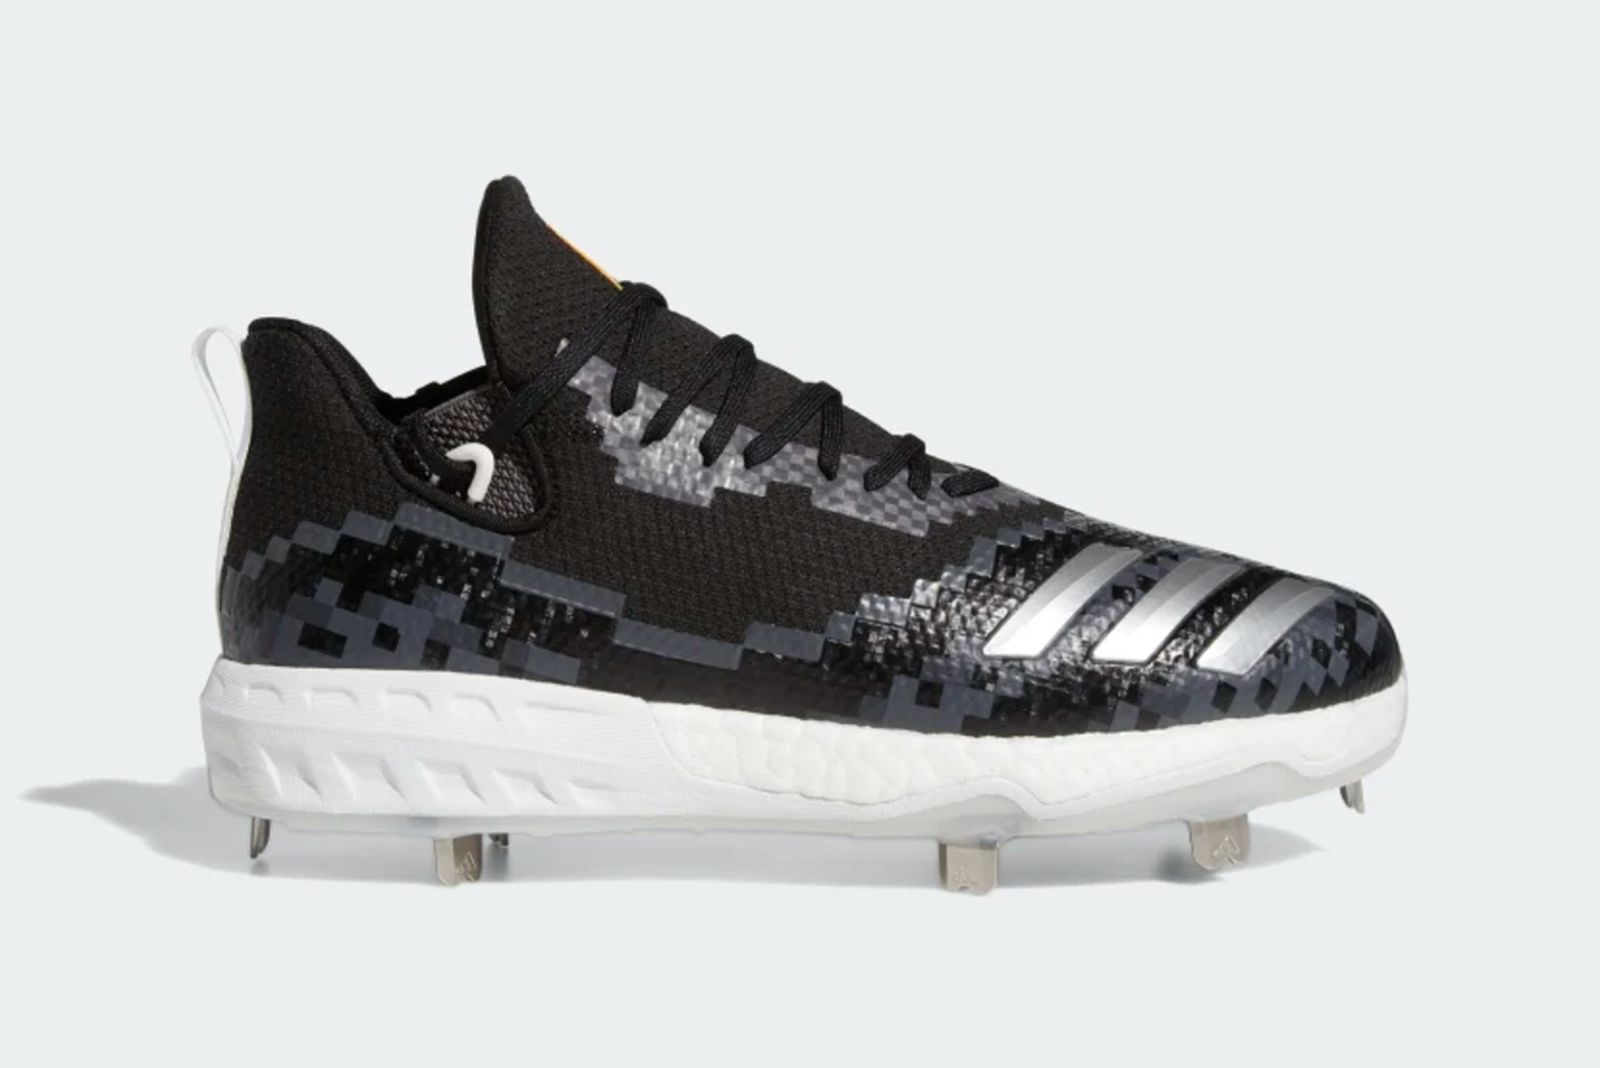 adidas snapchat game 8 bit baseball cleats 1